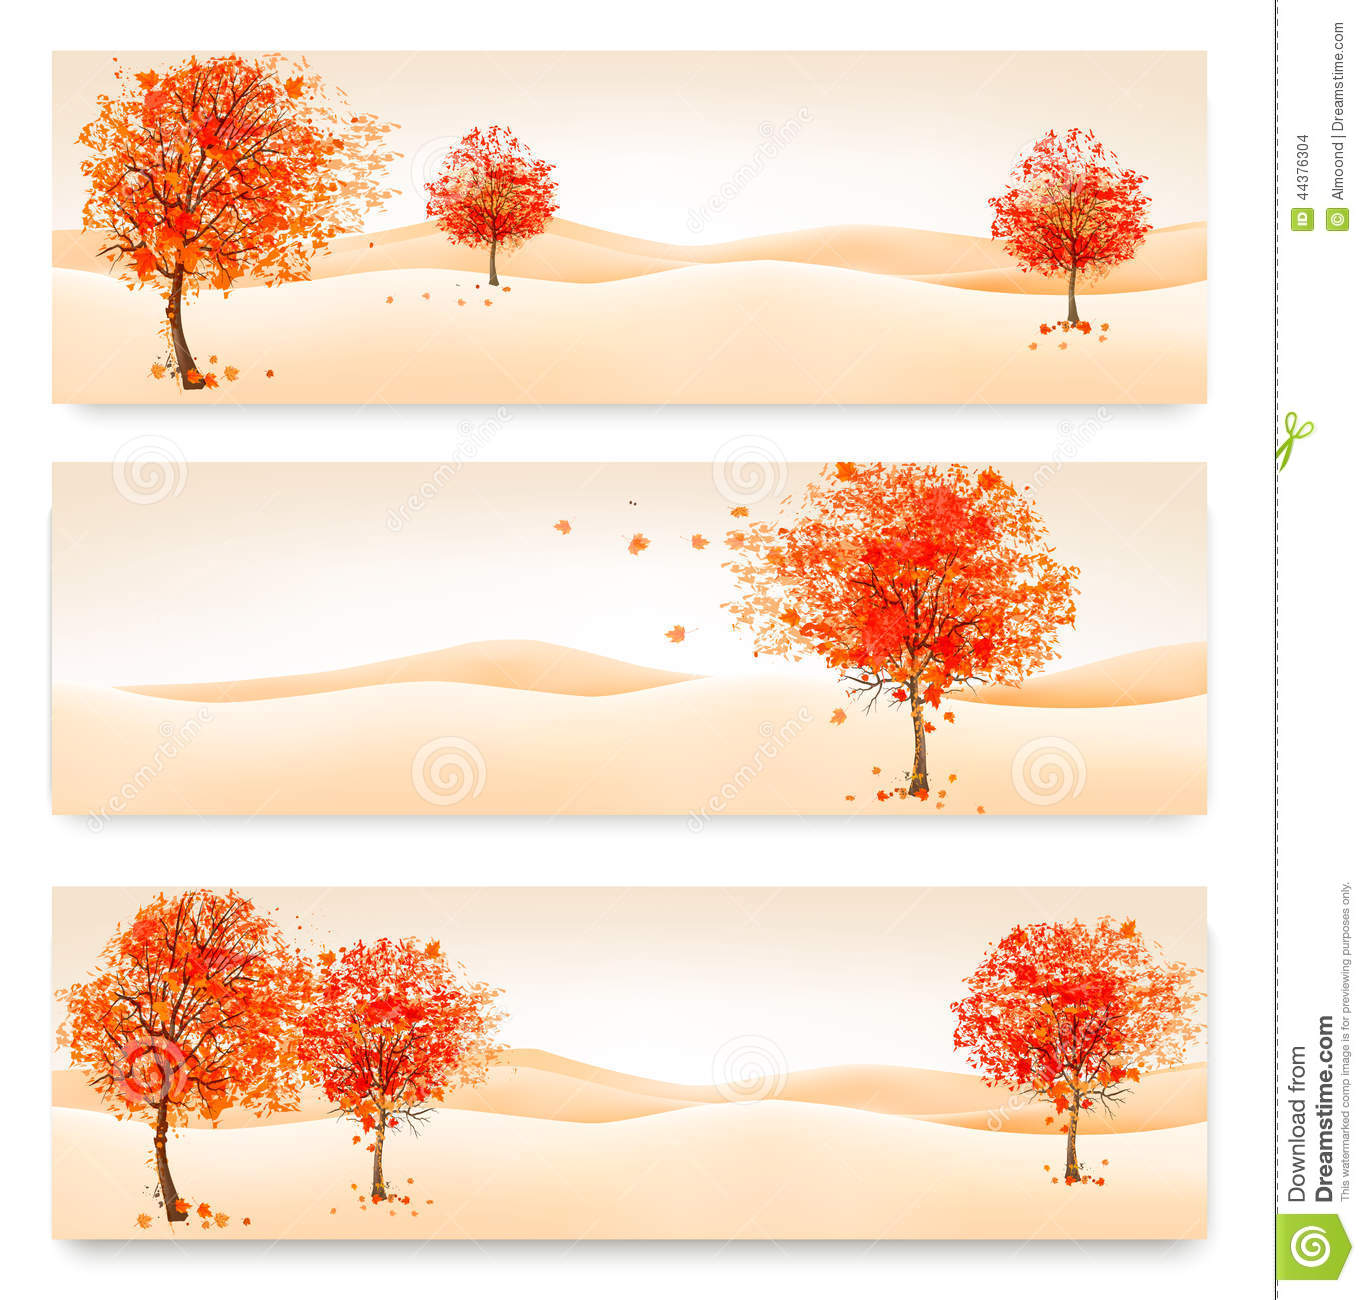 Three autumn abstract banners with colorful leaves and trees.